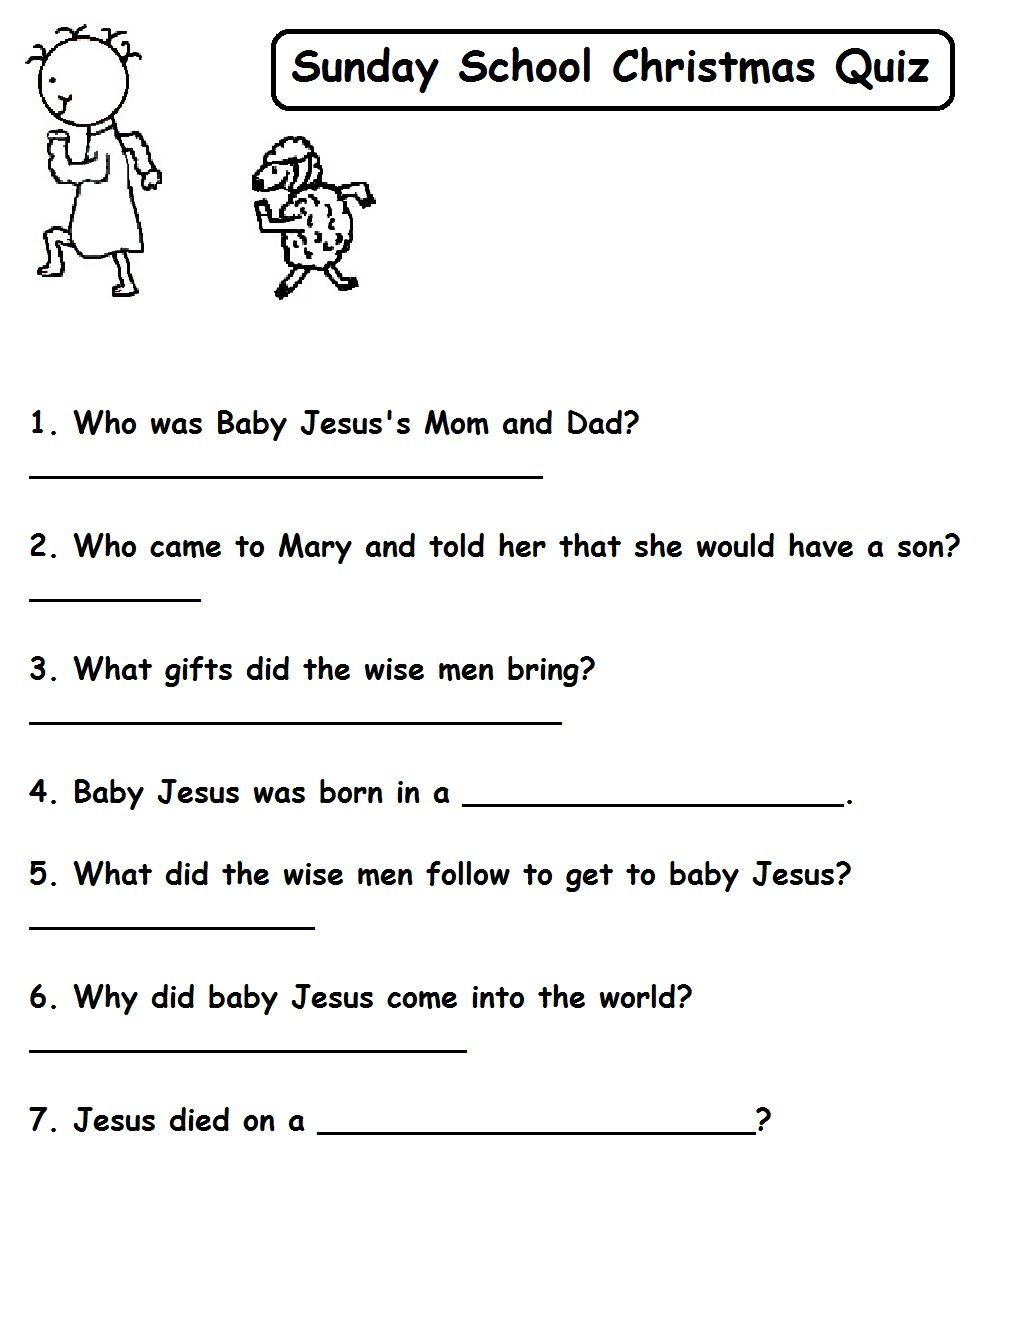 Quizzes - Church House Collection Blog Christmas Quizzes For Sunday School